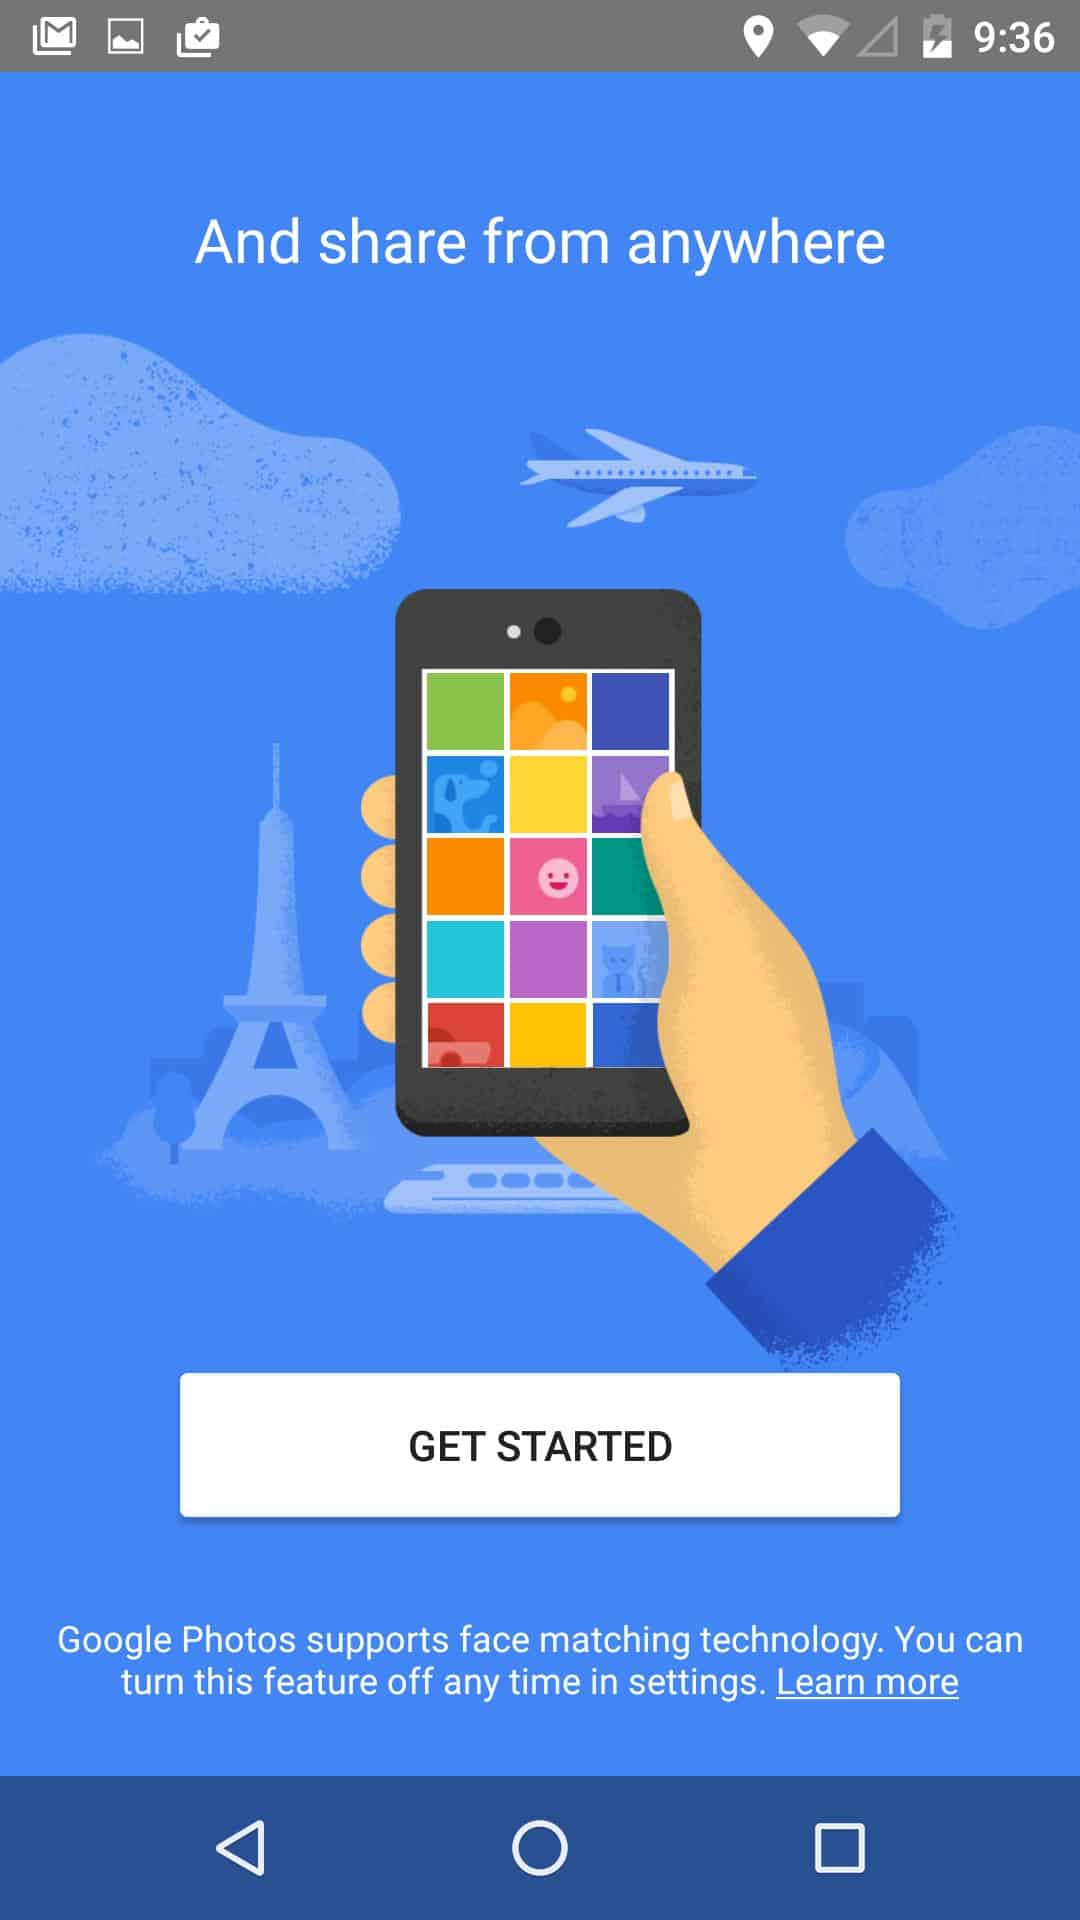 Onboarding @googlephoto #ui #inspiration #interface #materialdesign #design #android from UIGarage